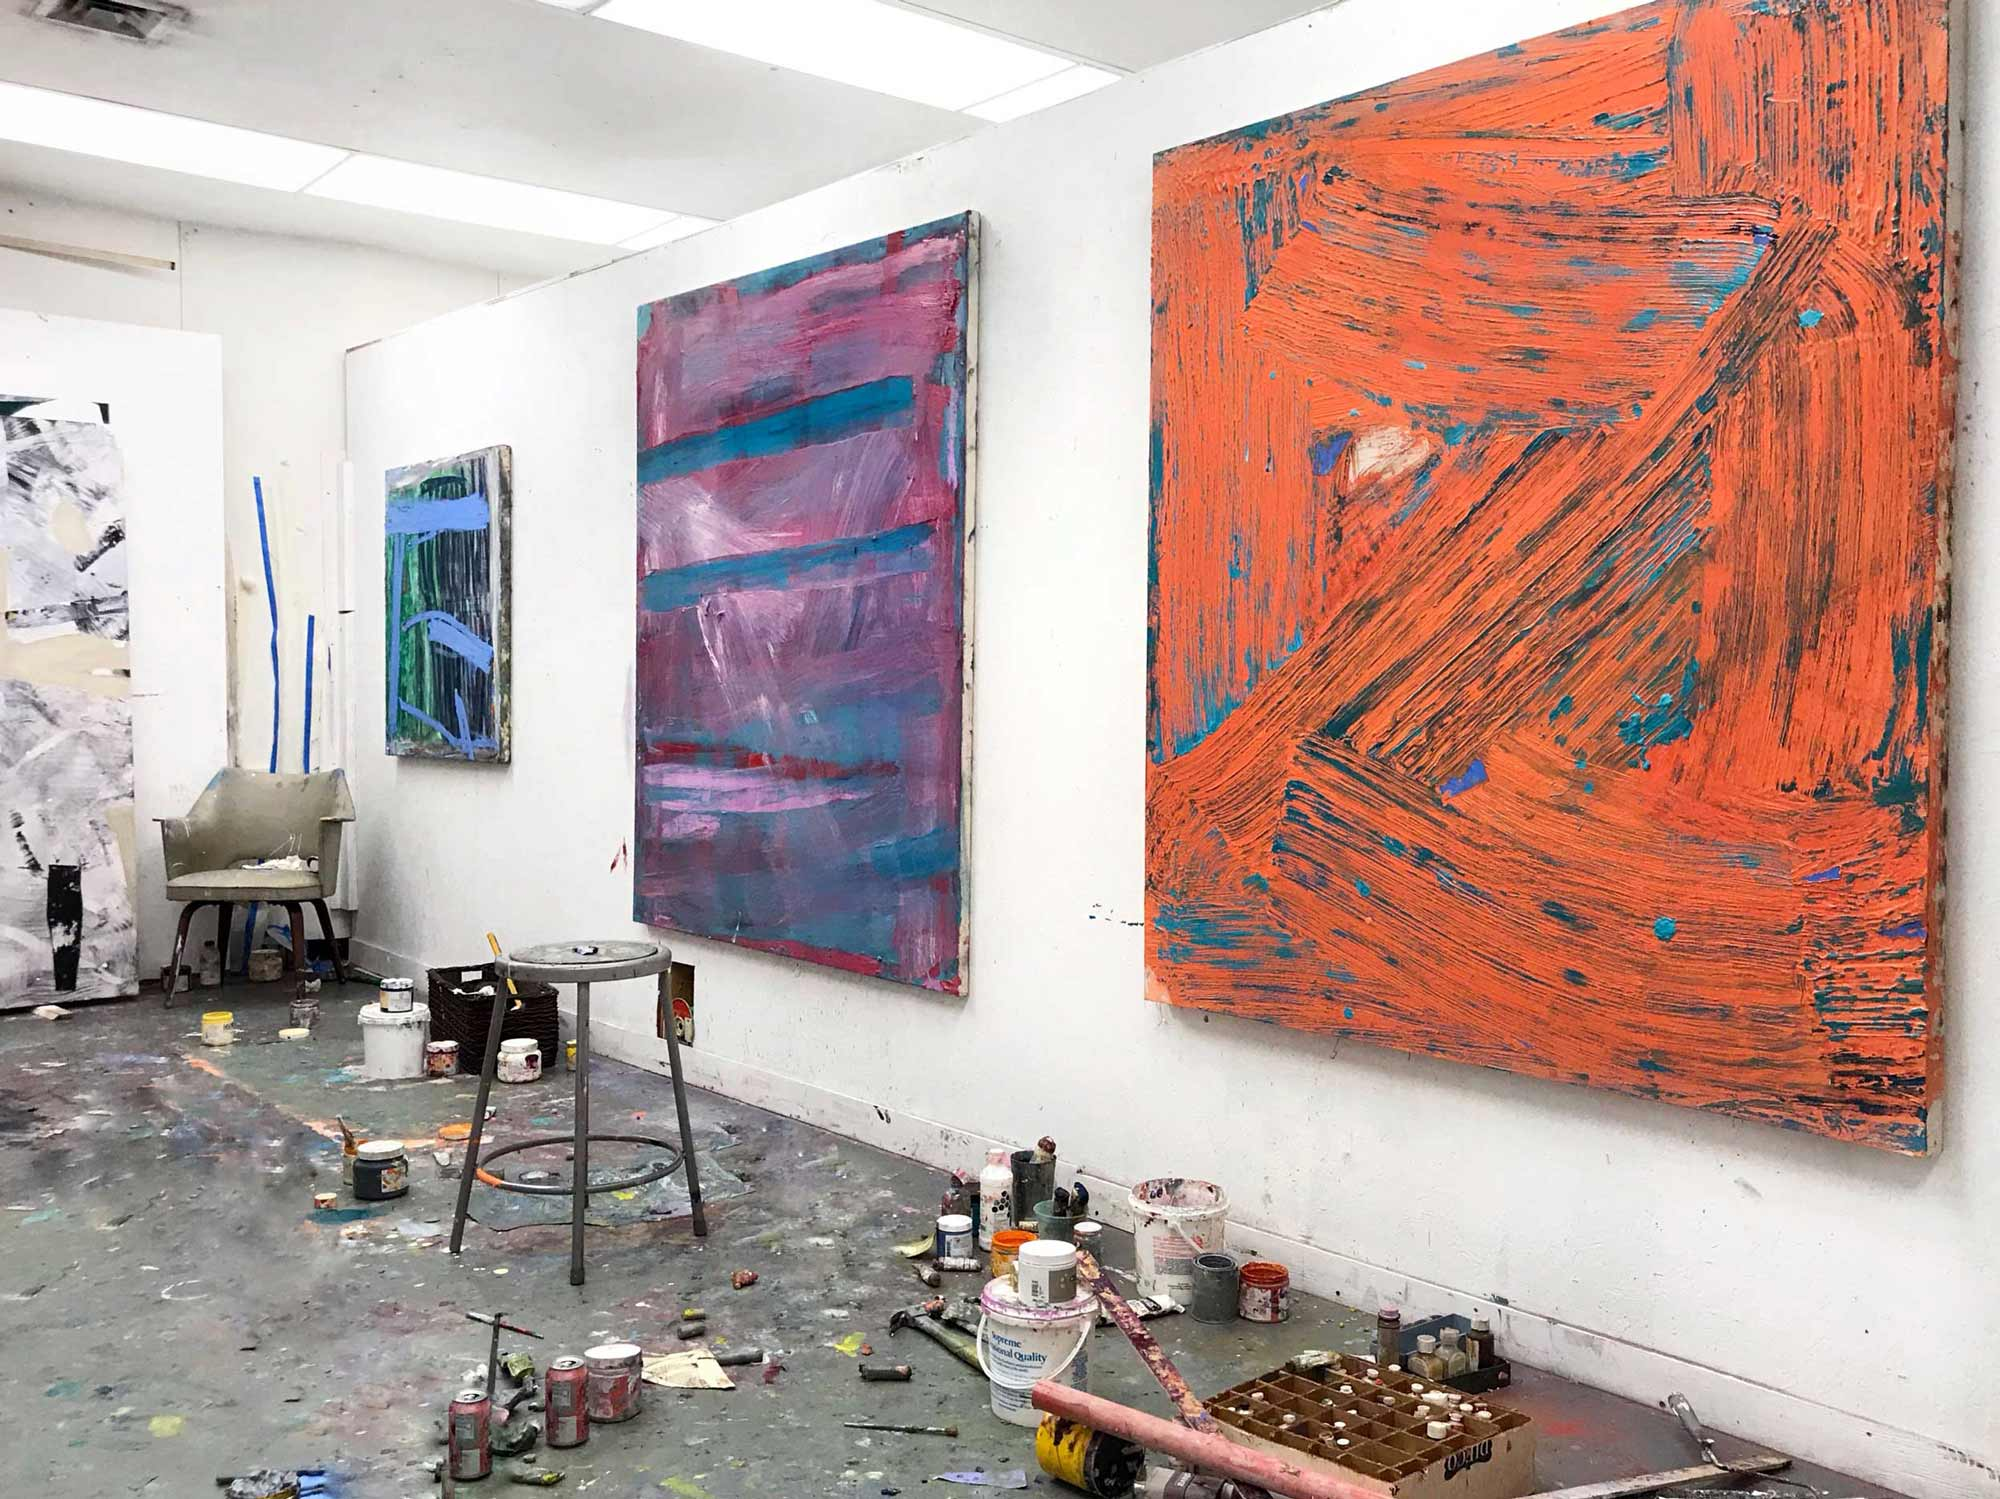 Studio view of large scale works, 2019, Tampa, FL